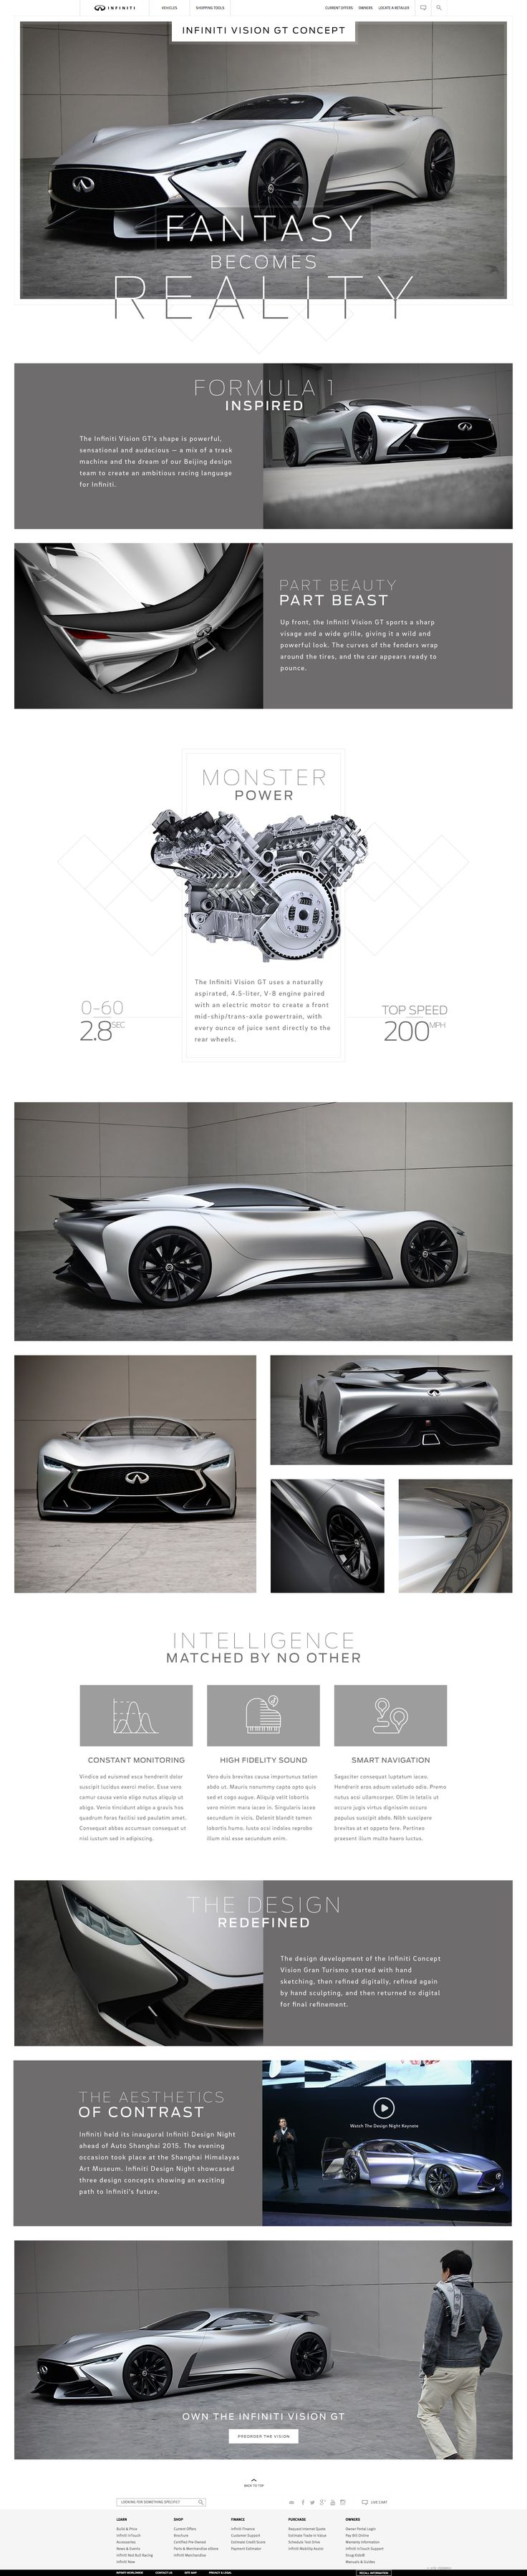 Infiniti vision gt jasonkirtley